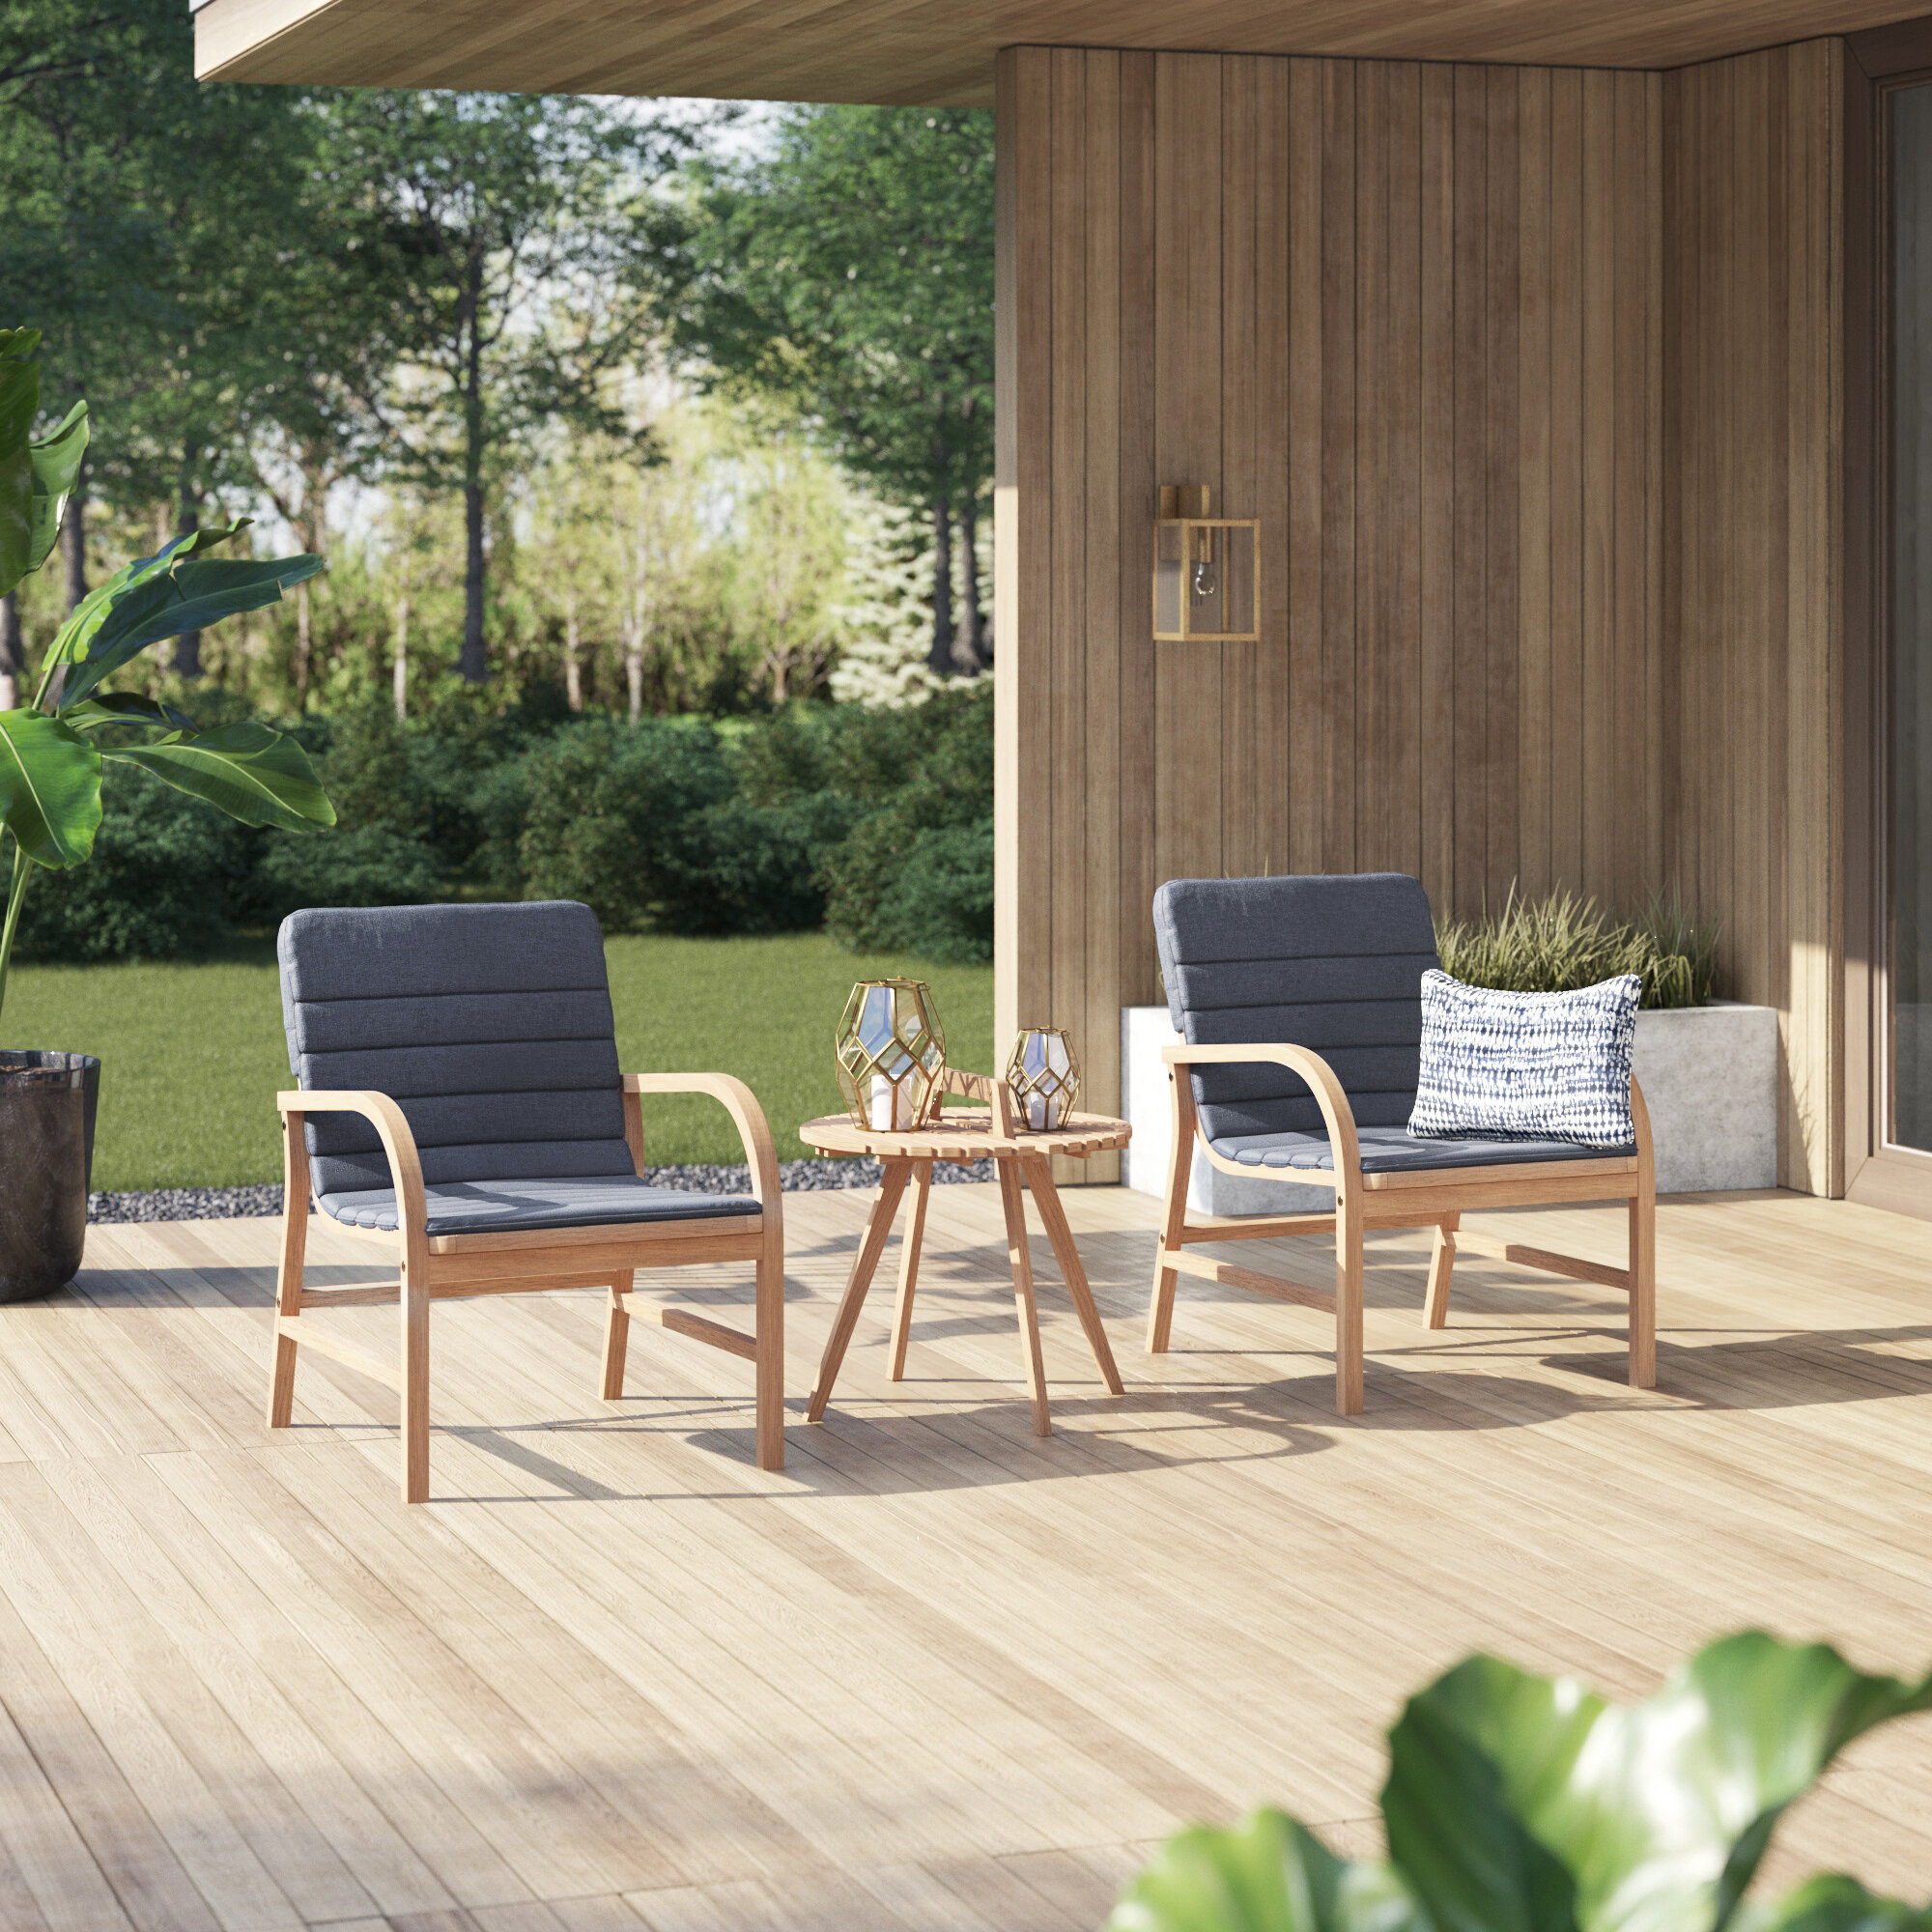 Mercury row kapp 3 piece outdoor seating group with cushions reviews wayfair